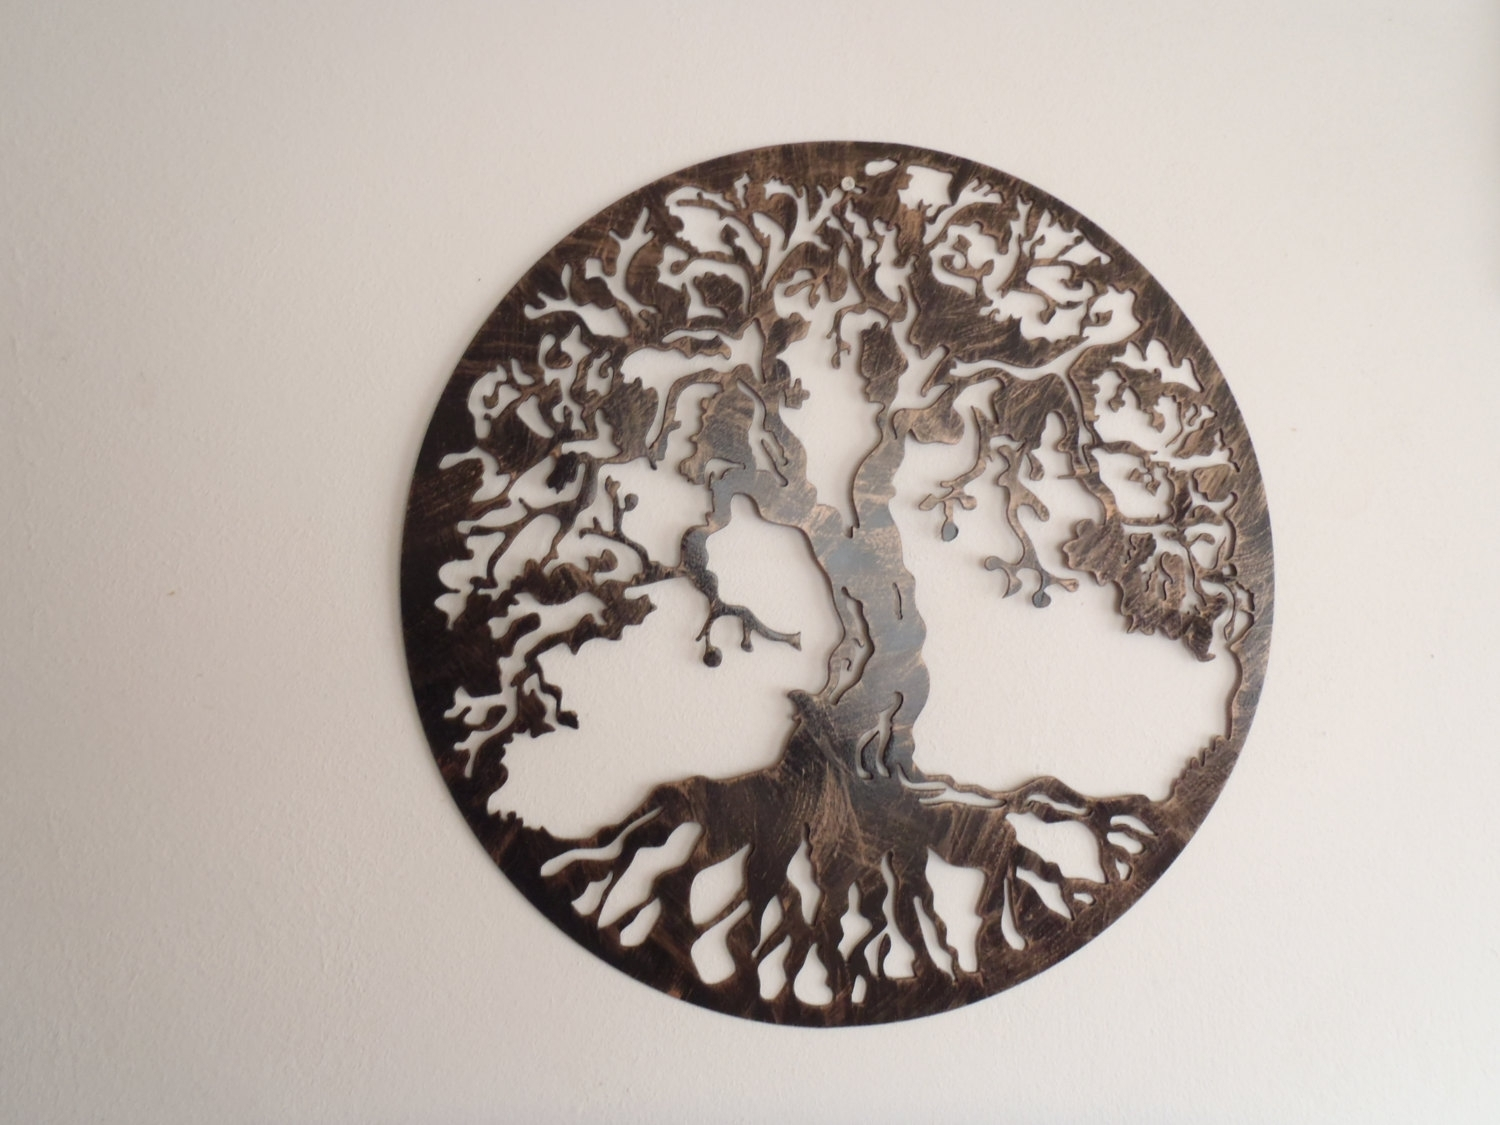 Tree Of Life Antique Look Fabulous Tree Of Life Wall Decor – Home In Best And Newest Tree Of Life Wall Art (View 10 of 15)